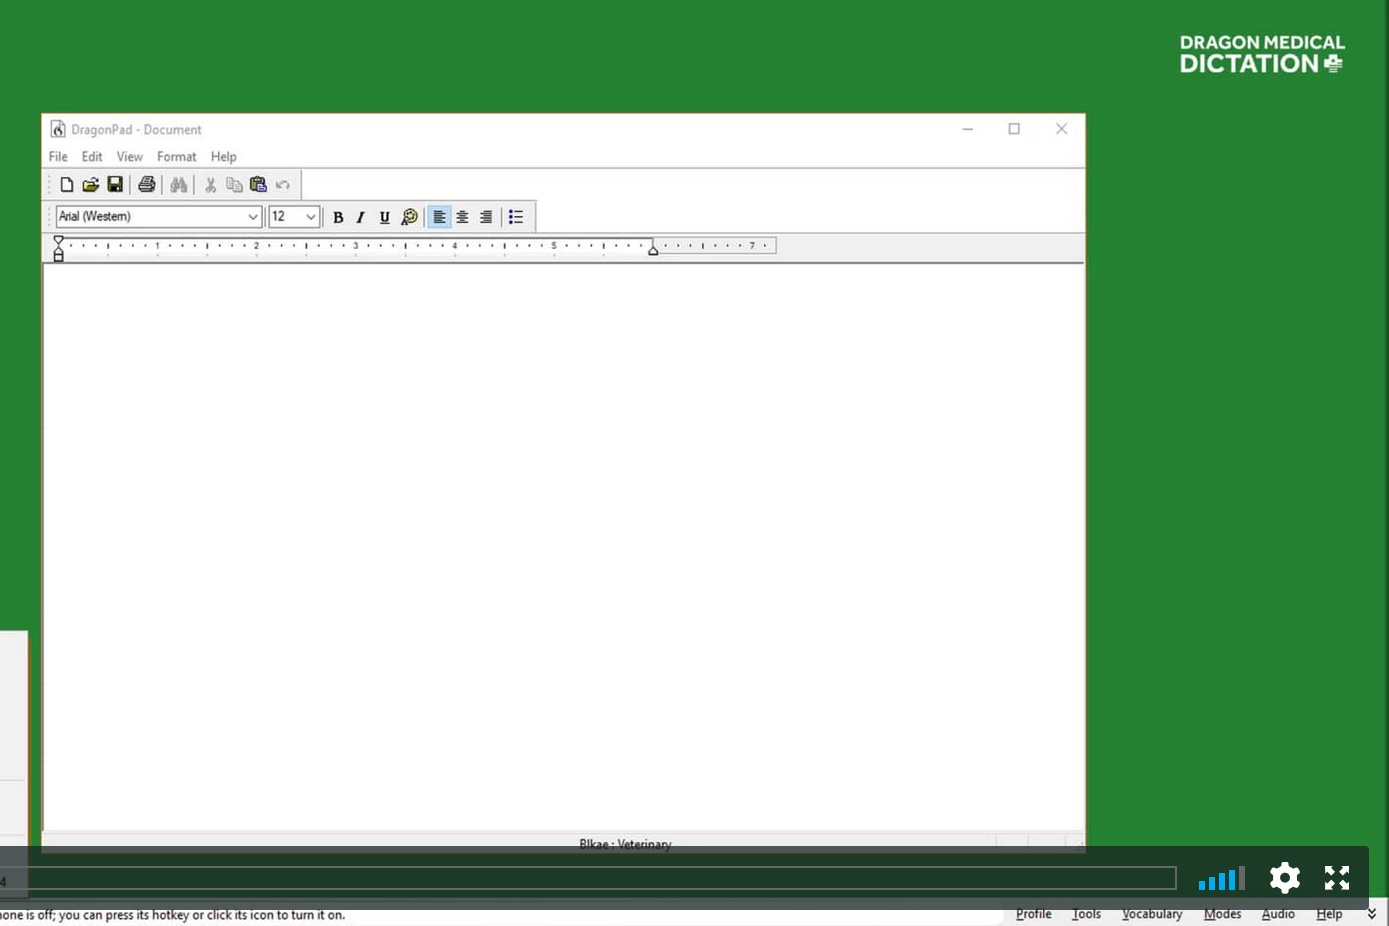 TUTORIAL #12: CUSTOMIZING THE DRAGON BAR   This video teaches you how to use and customize the look and feel of the Dragon Bar, one of the two built-in word processors in Dragon Medical.